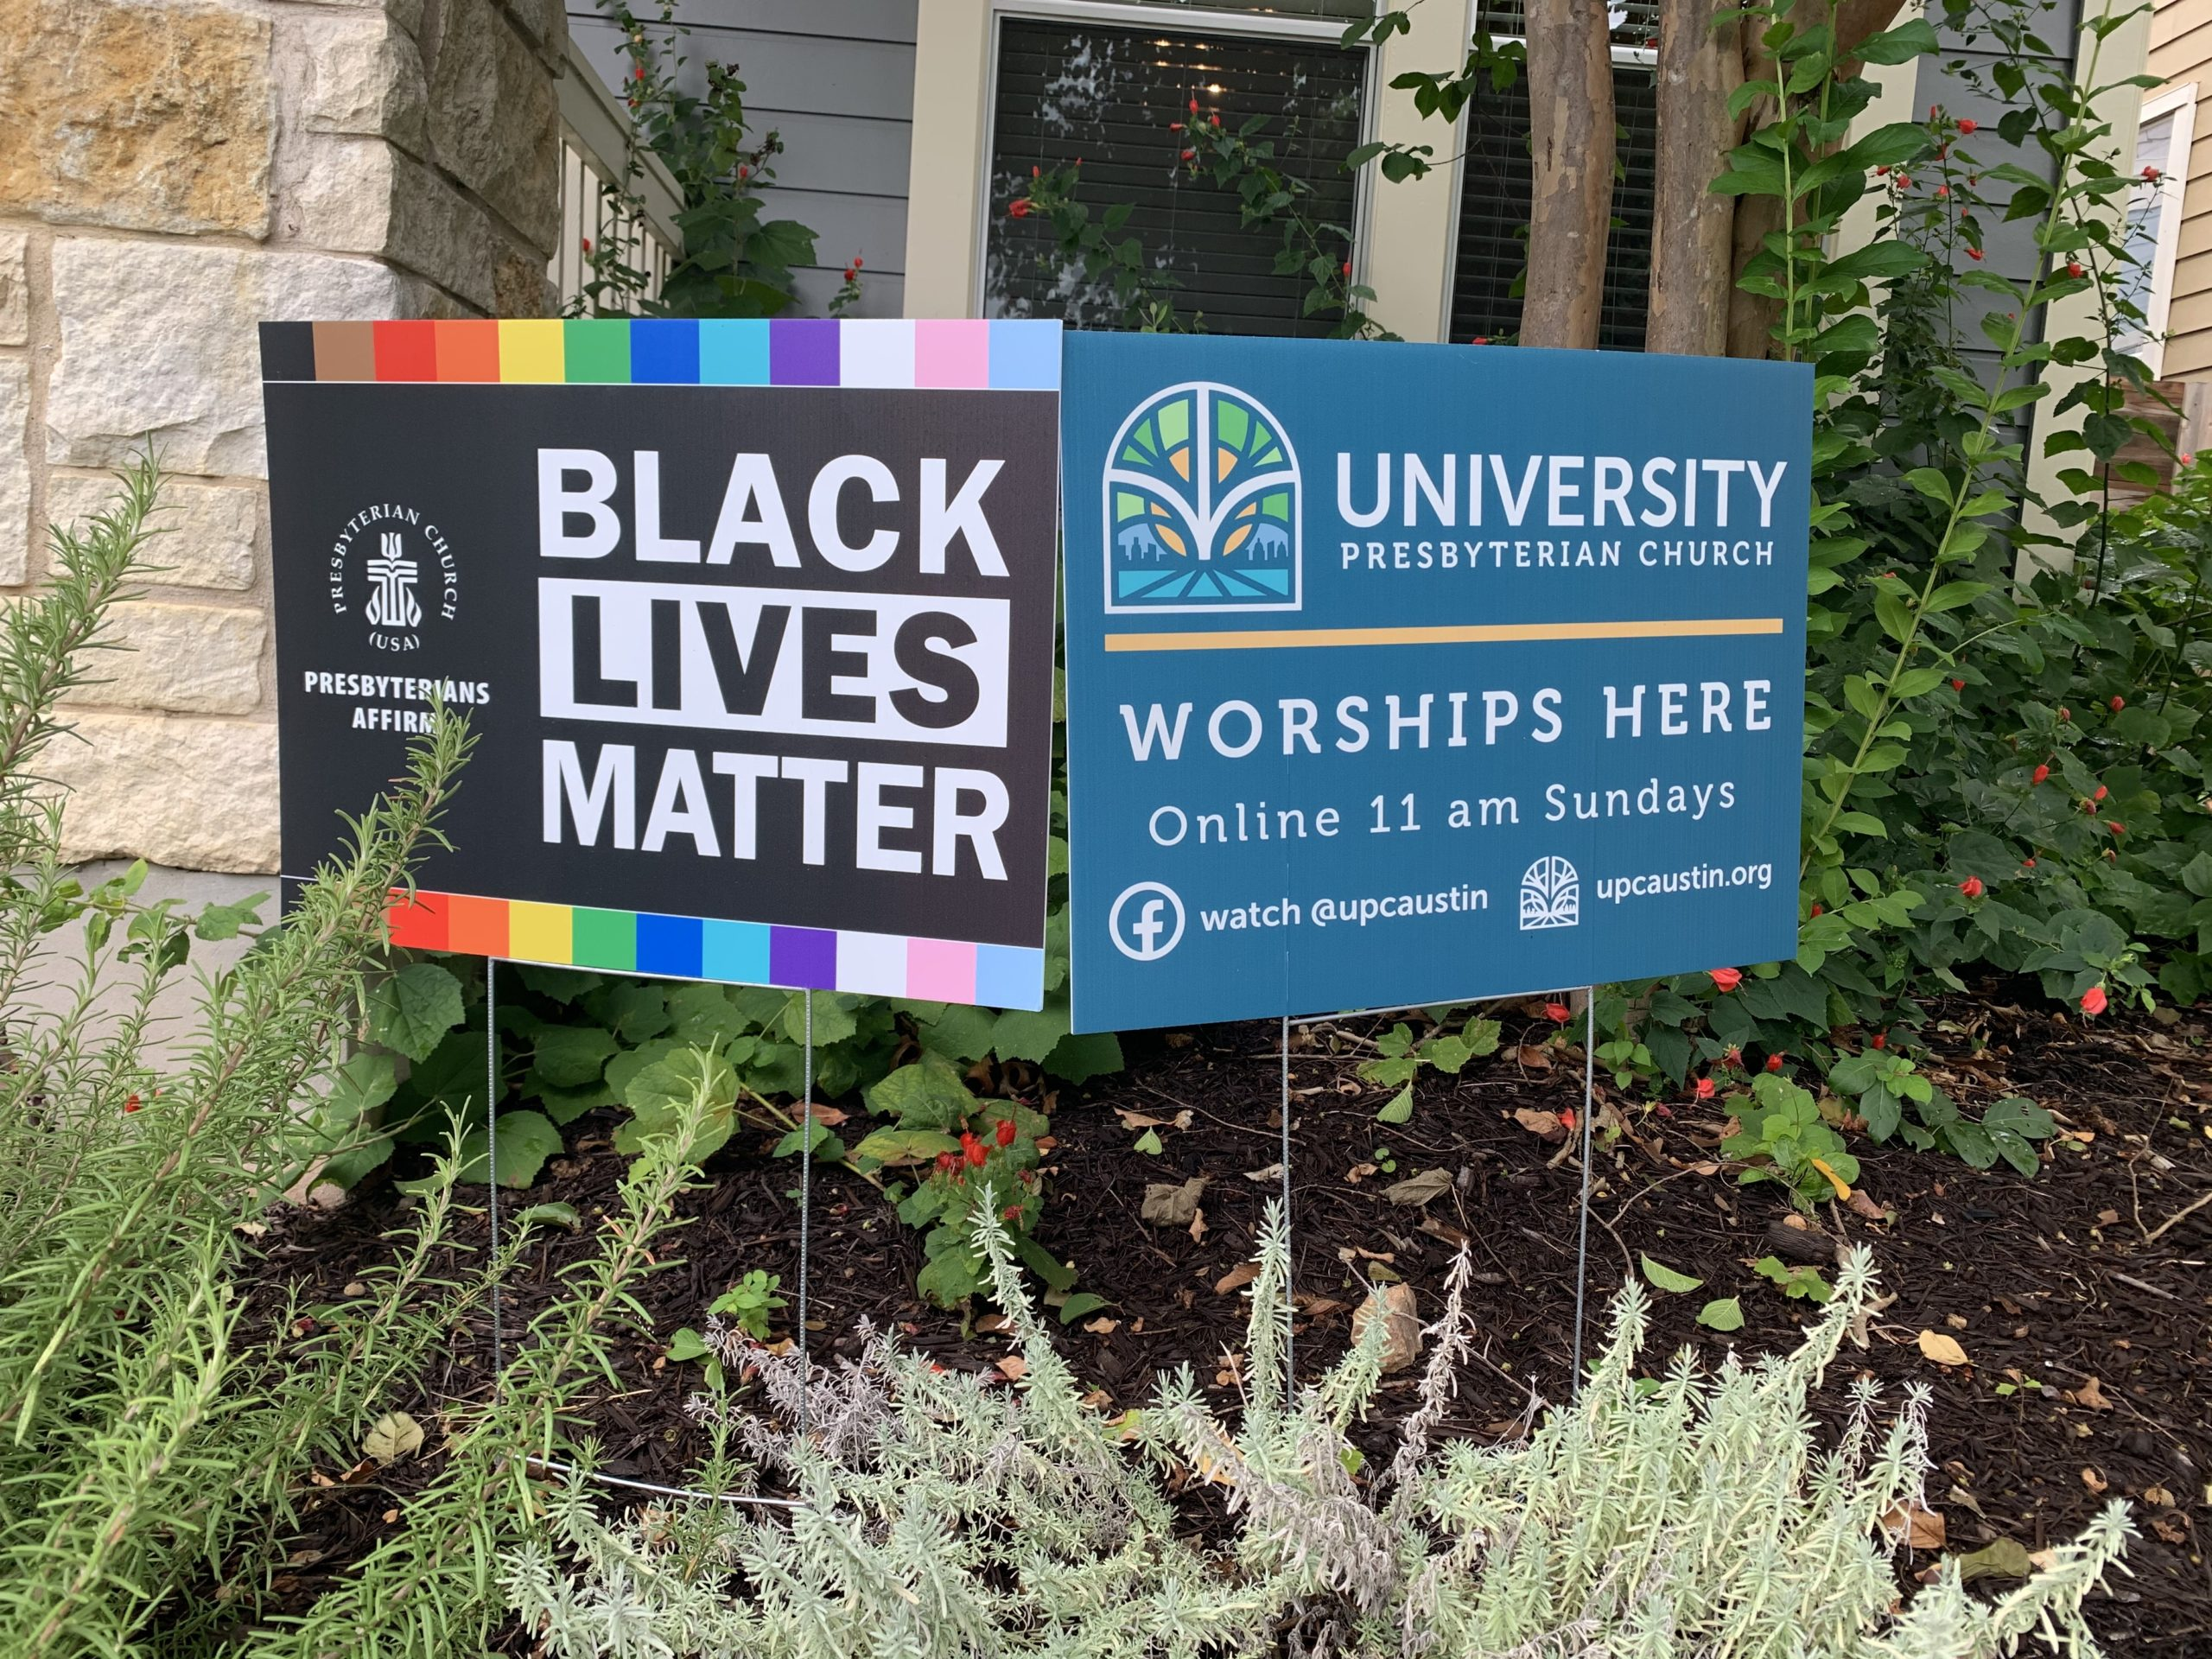 yard signs black lives matter and worship here